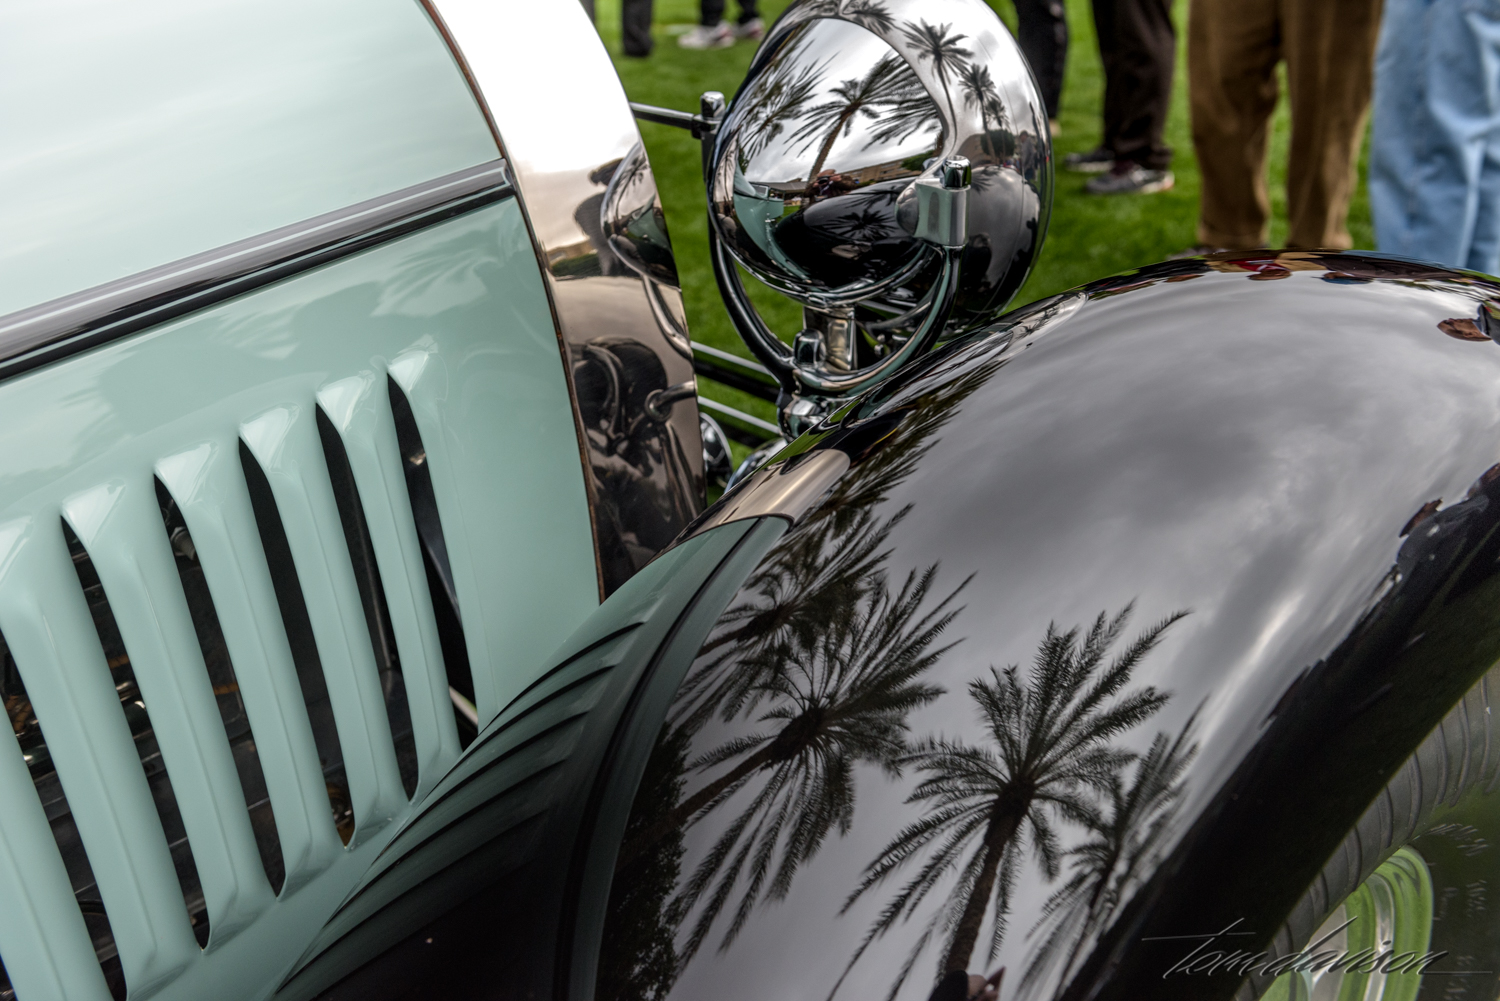 Reflections on a Bugatti